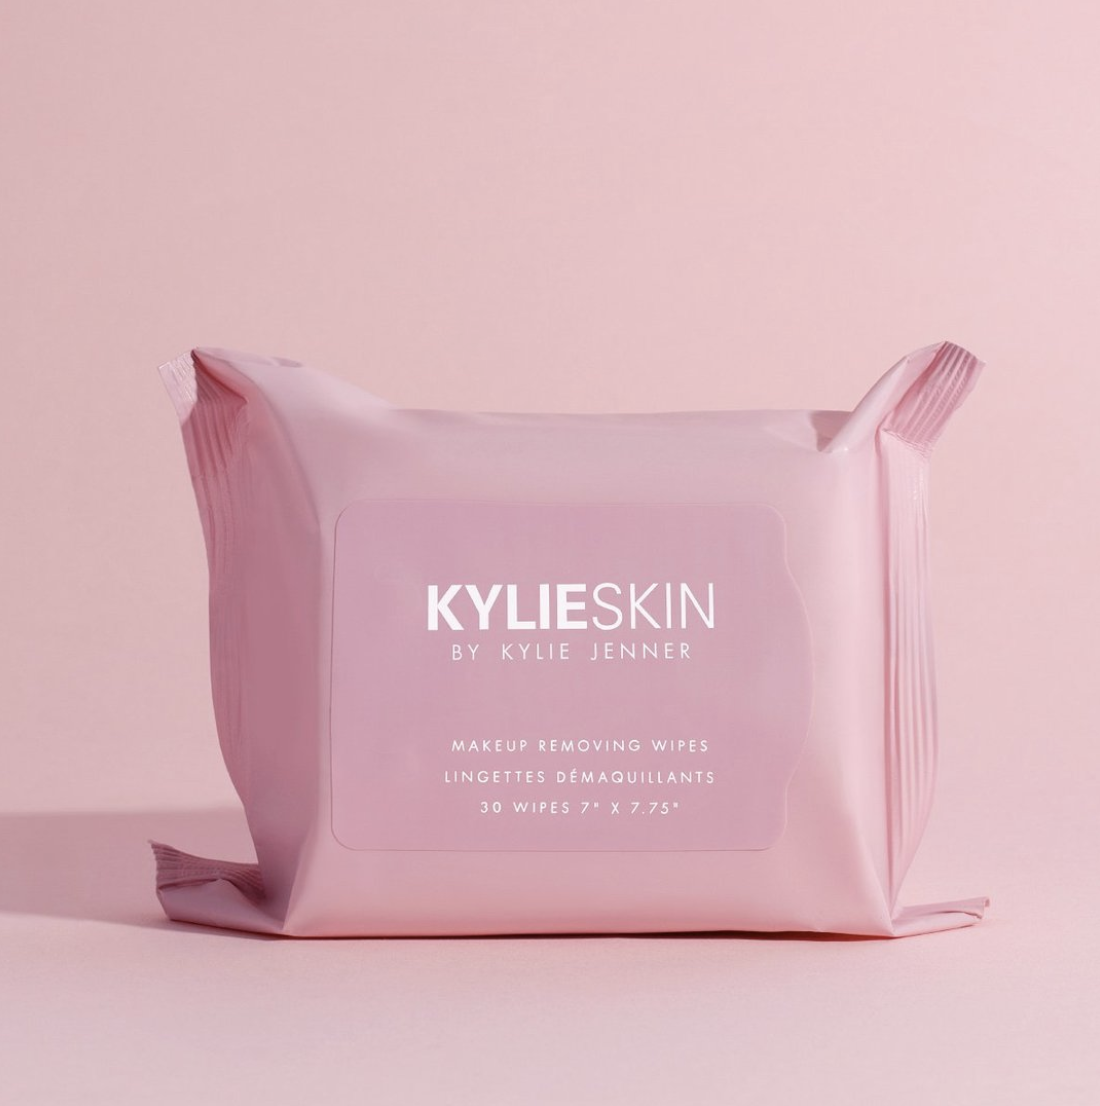 Is Kylie Skin CrueltyFree in 2020? Makeup remover wipes